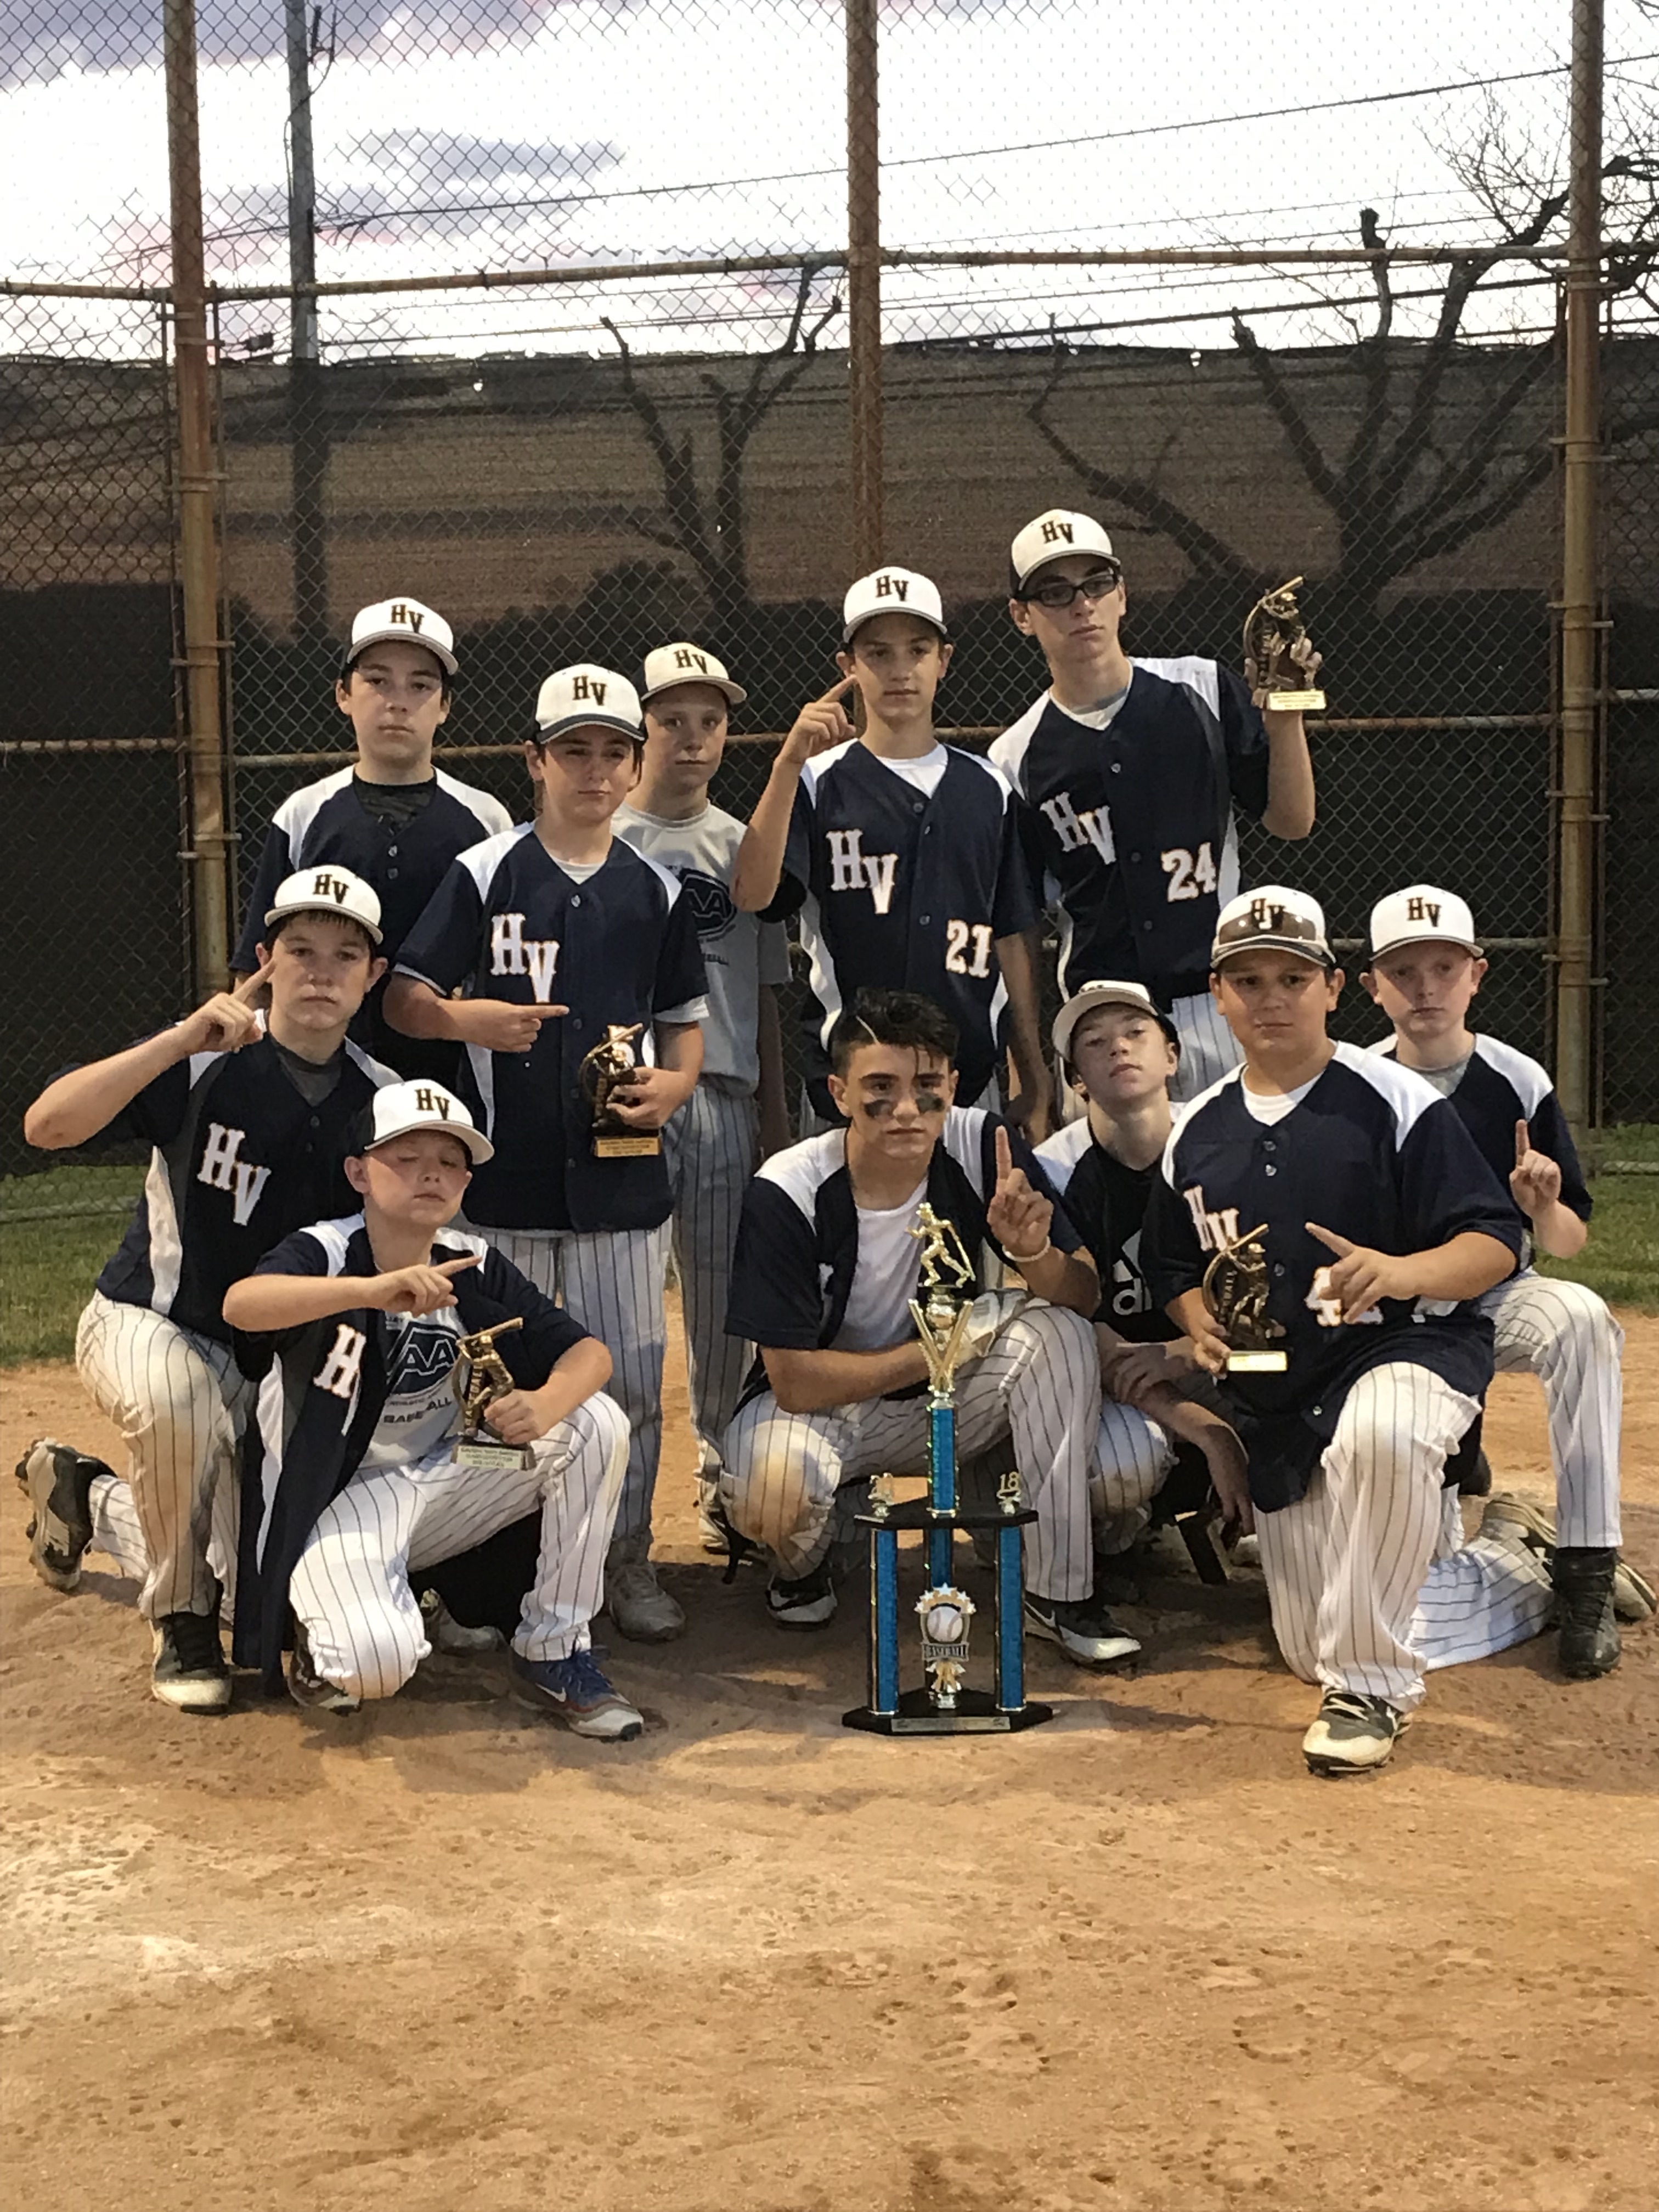 Congratulations to our HVAA Travel Baseball Boys Team